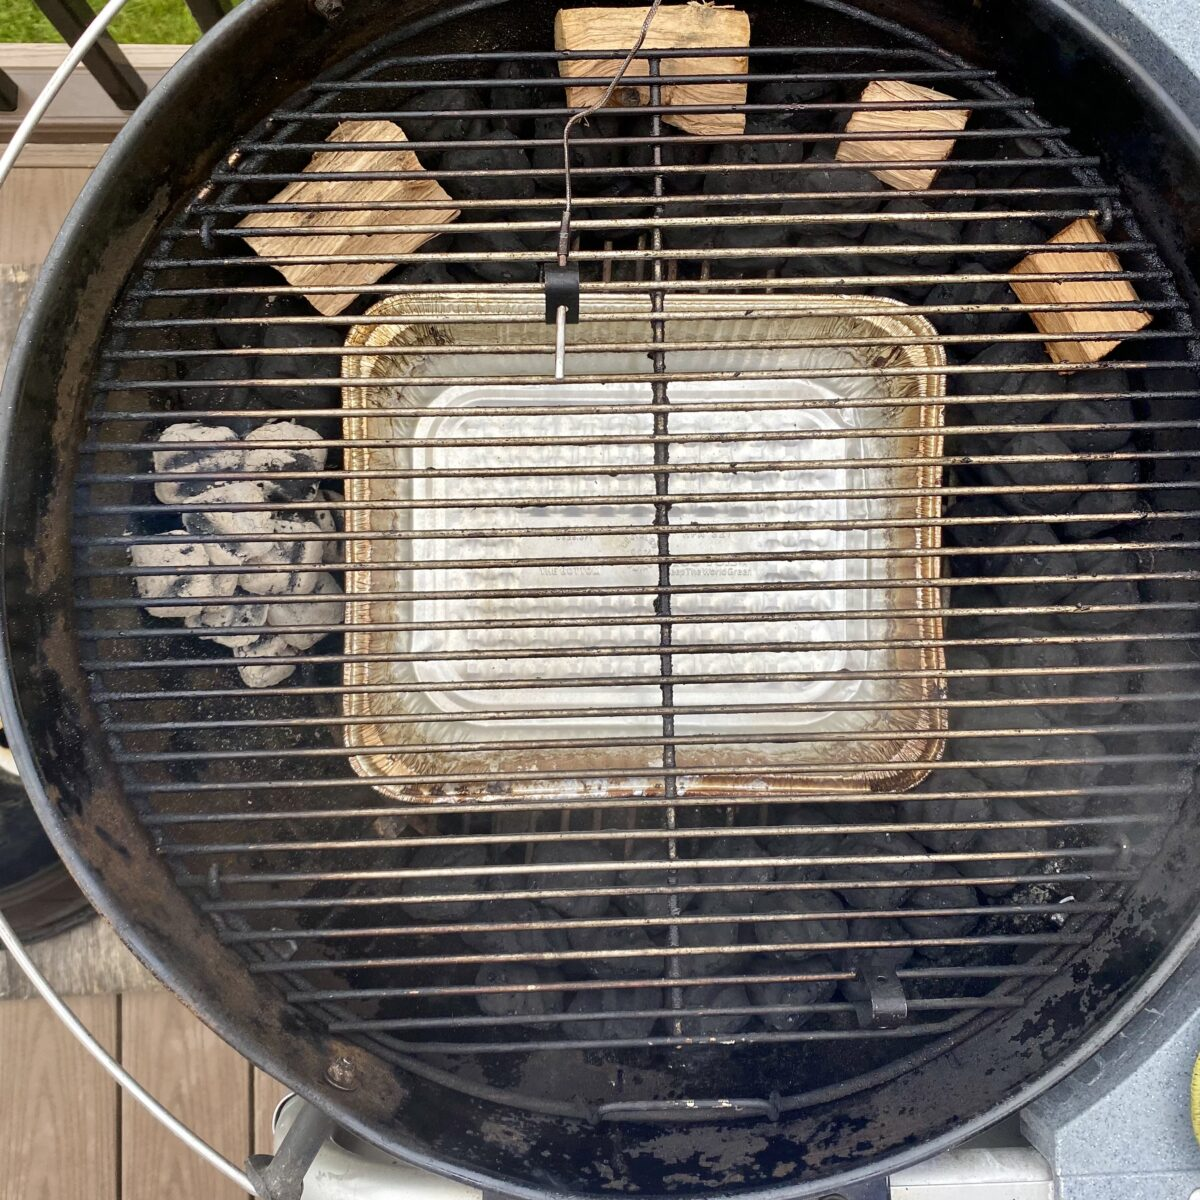 Overhead image showing grill temperature probe placement on the cooking grate.